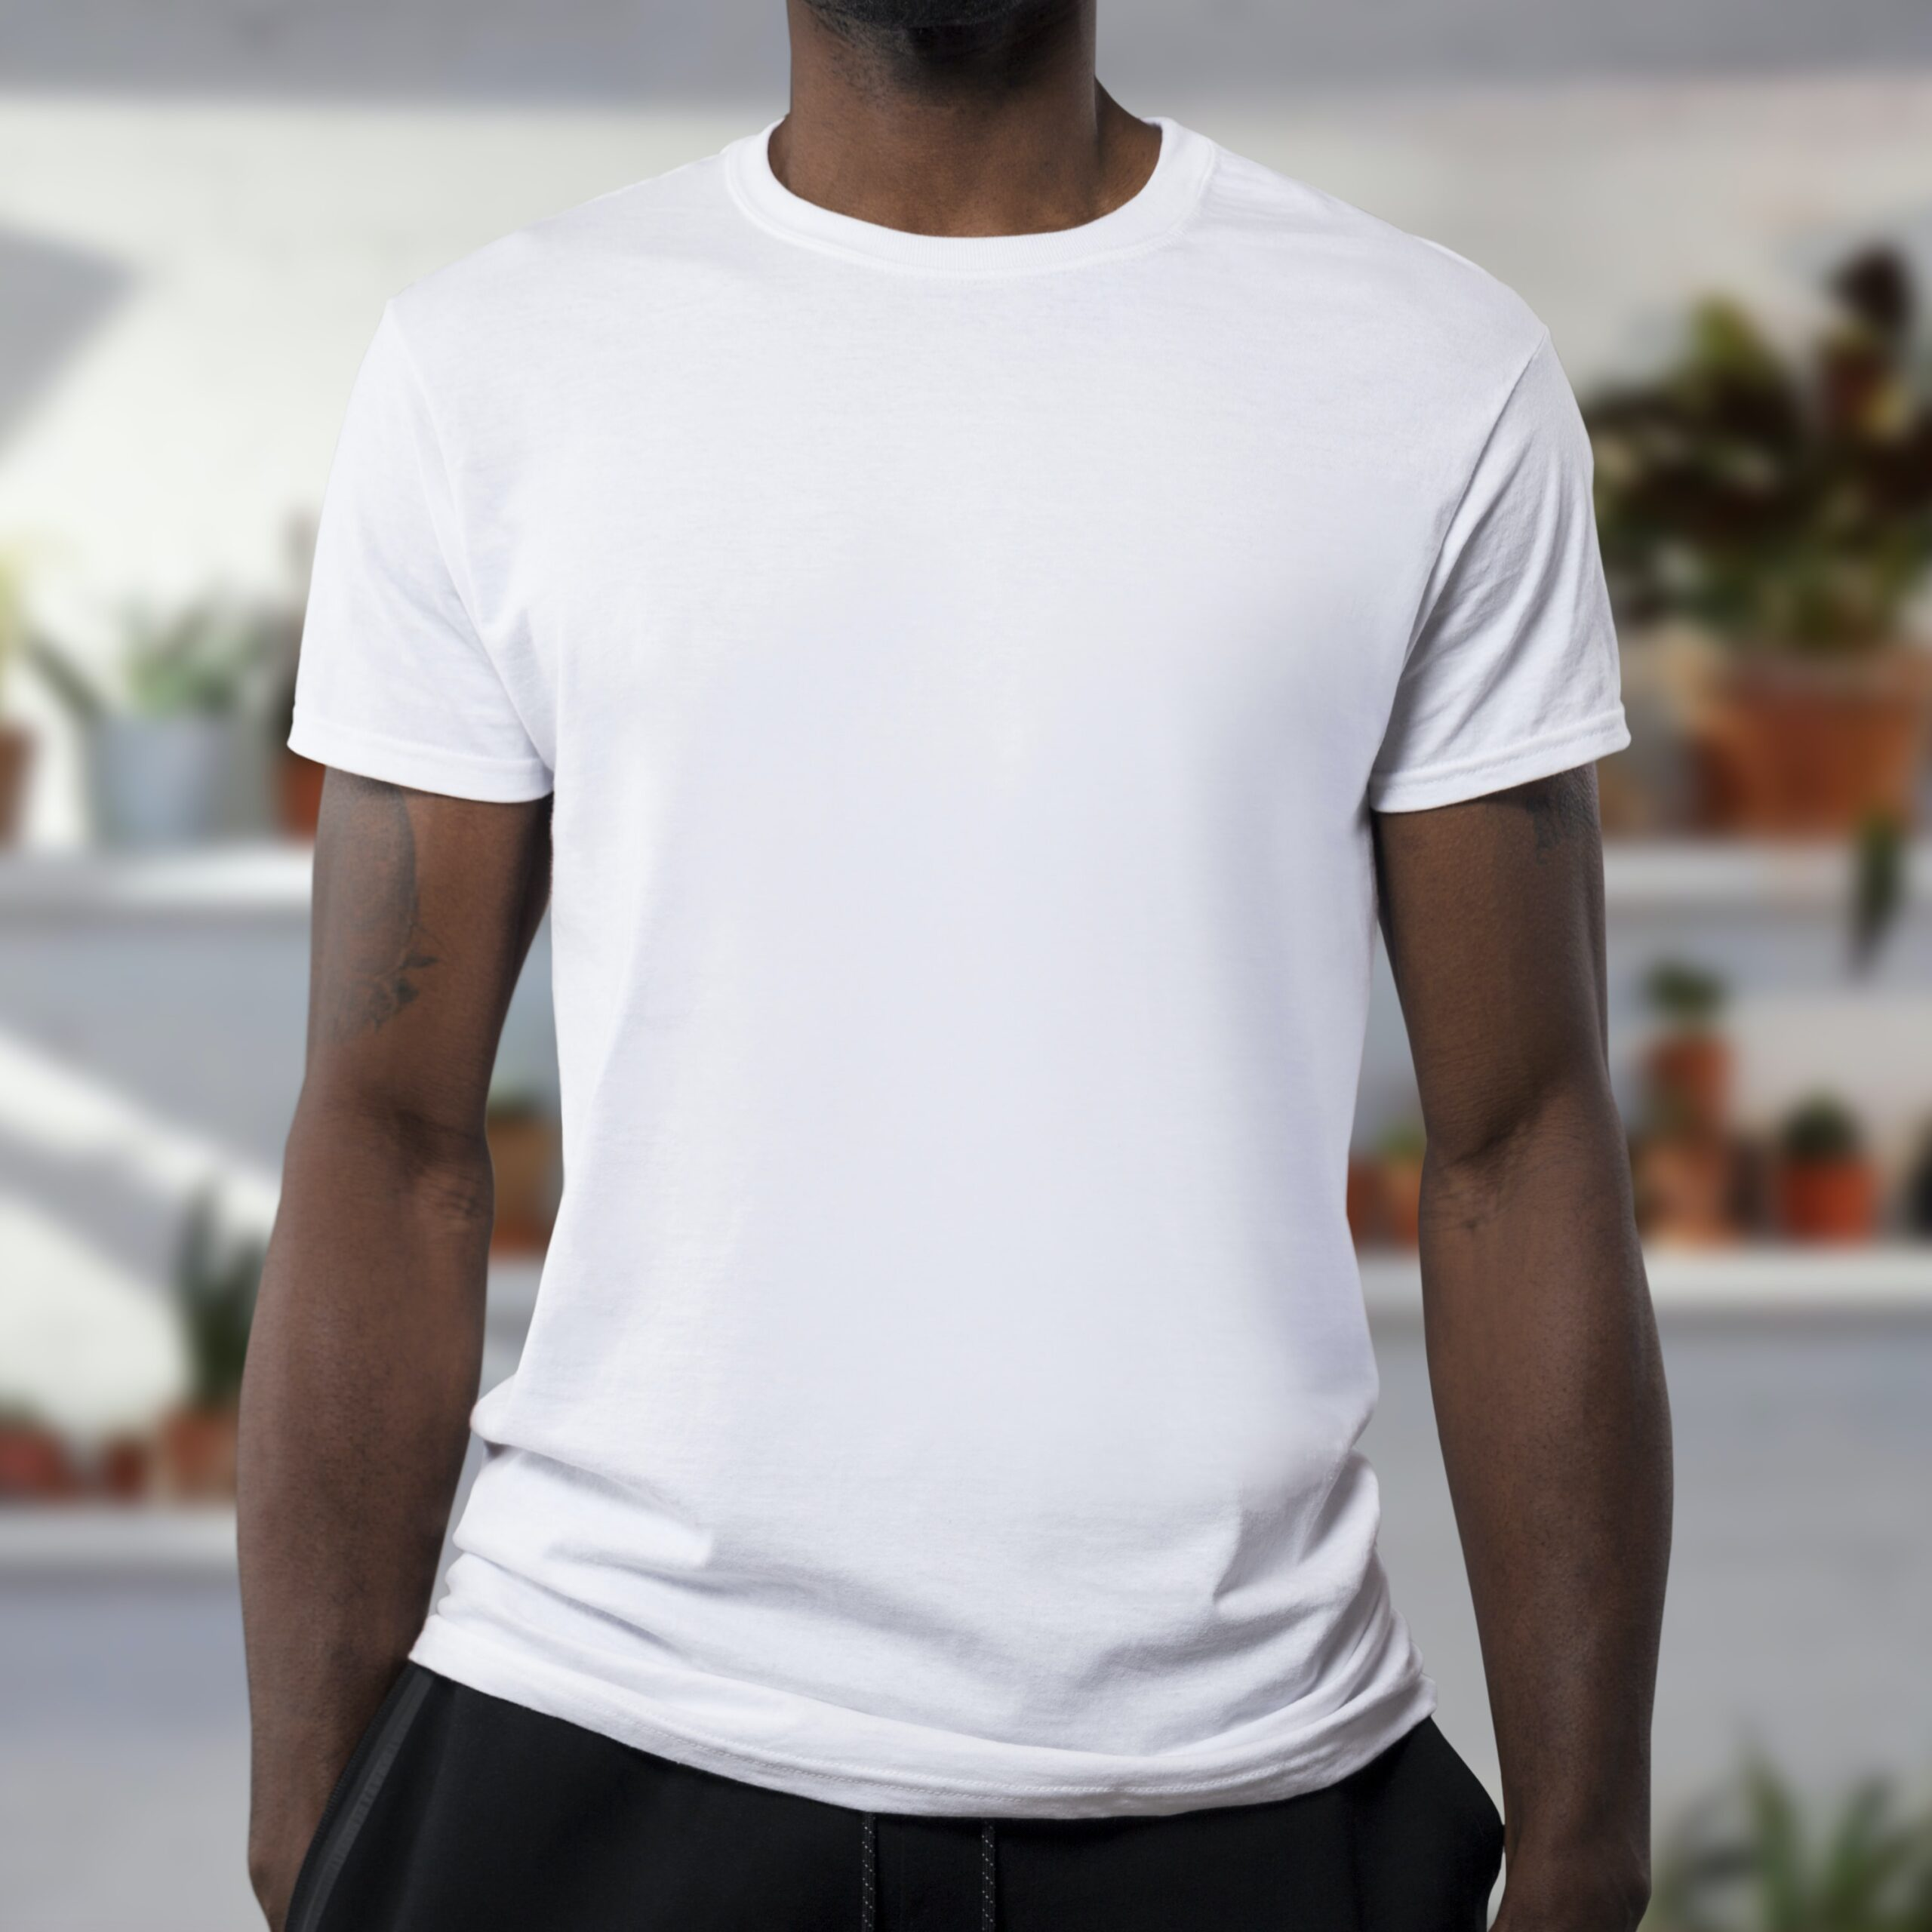 Moisture Wicking Undershirts: How to Choose Them